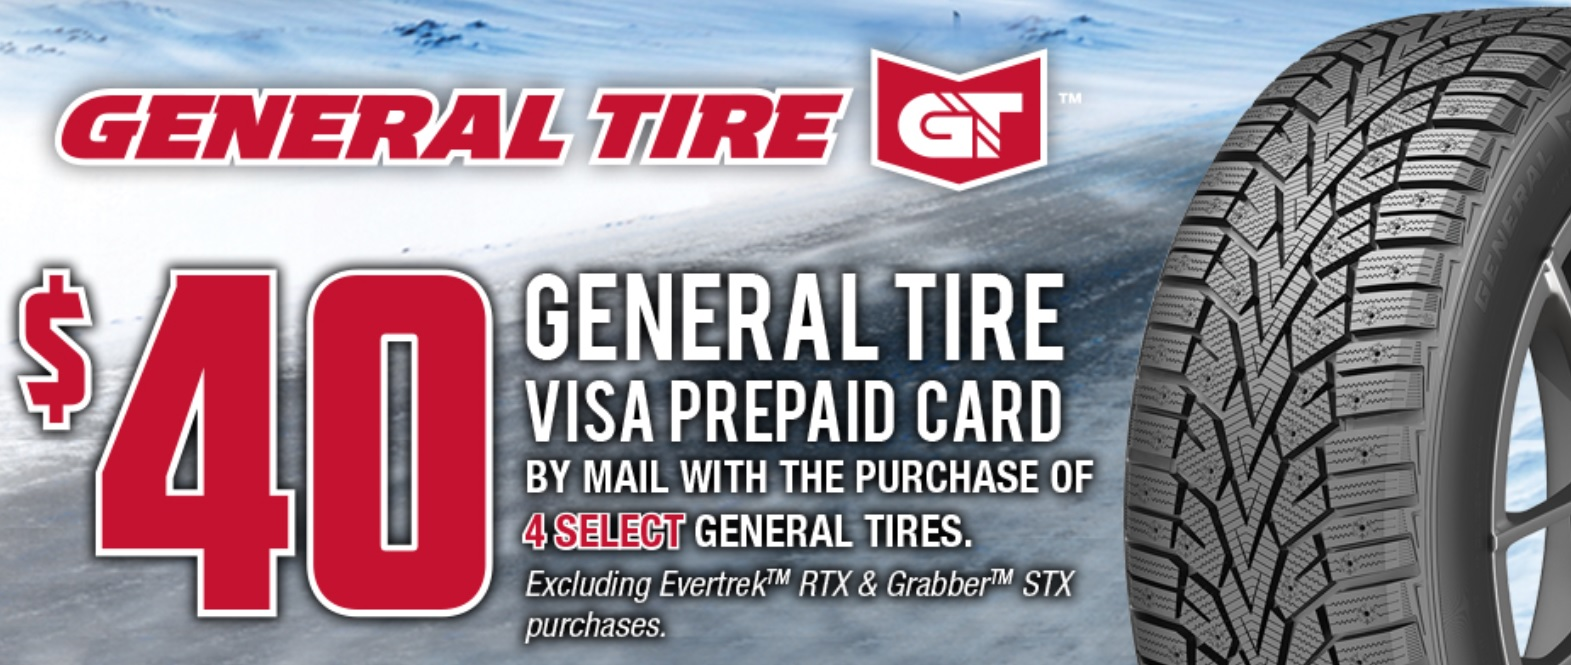 General Tire special offer